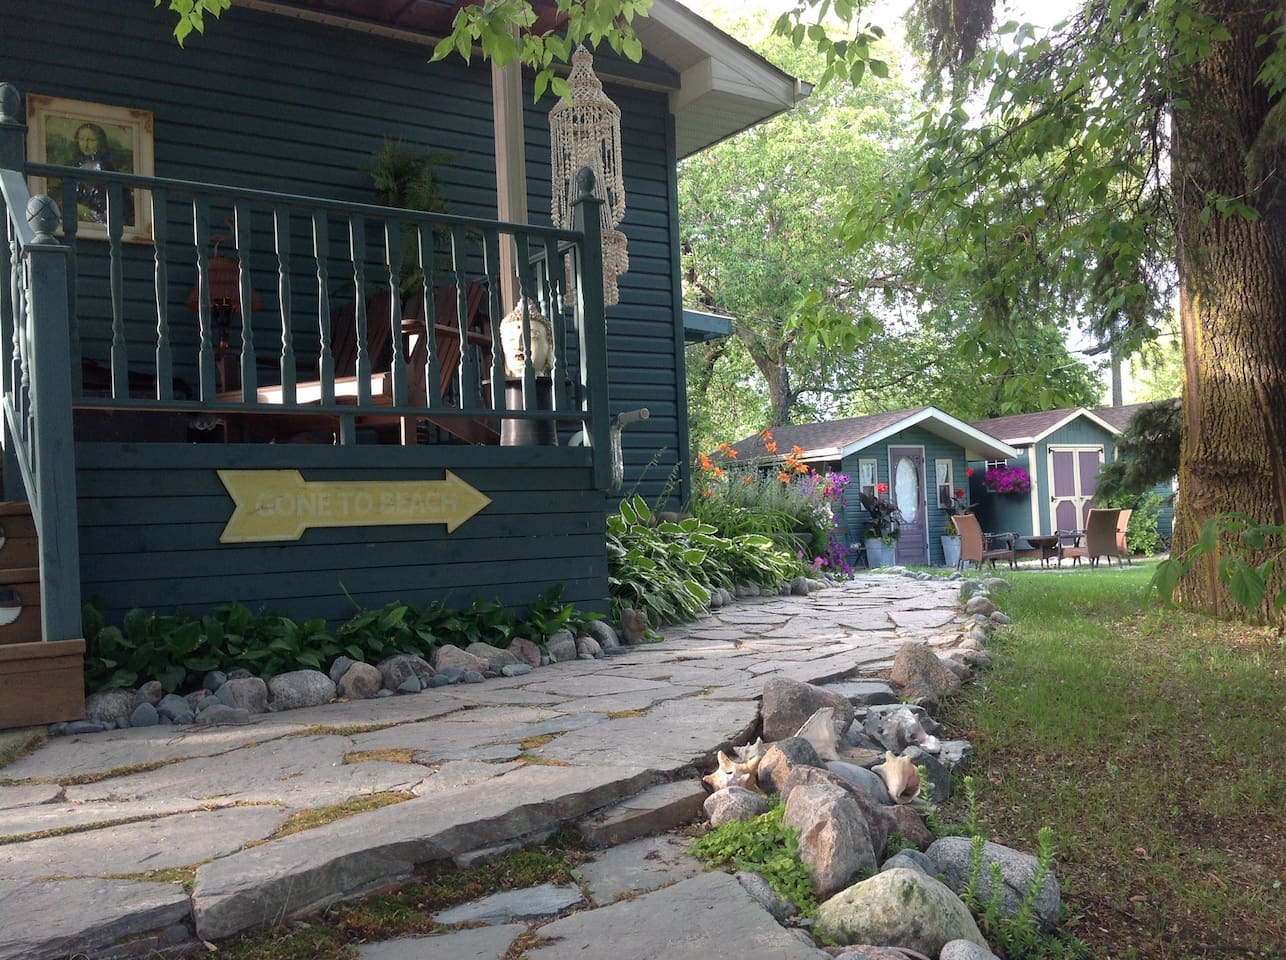 Take the flagstone path to the little house in the centre of our backyard haven